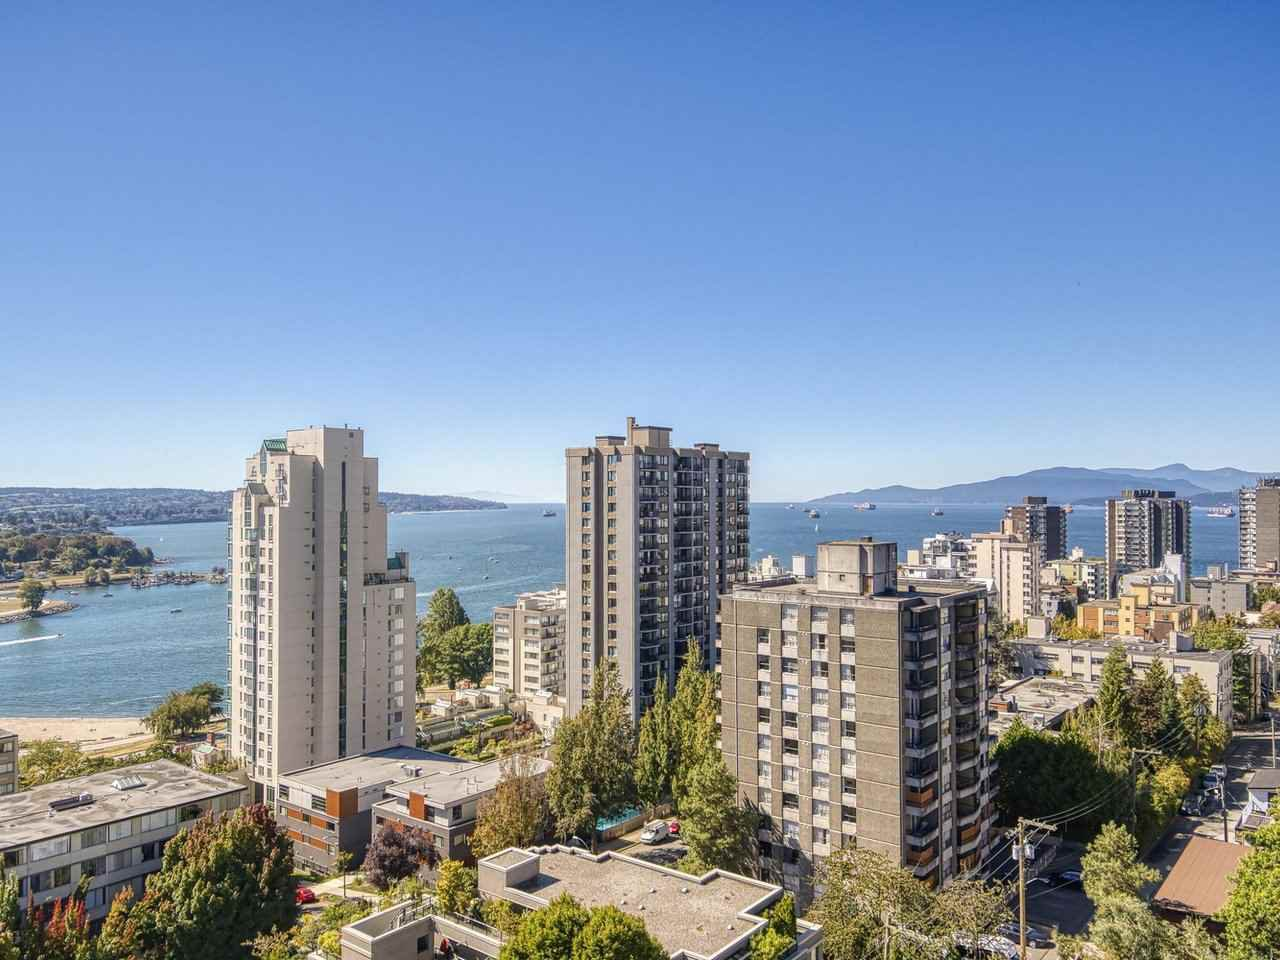 """Main Photo: 905 1250 BURNABY Street in Vancouver: West End VW Condo for sale in """"The Horizon"""" (Vancouver West)  : MLS®# R2525918"""